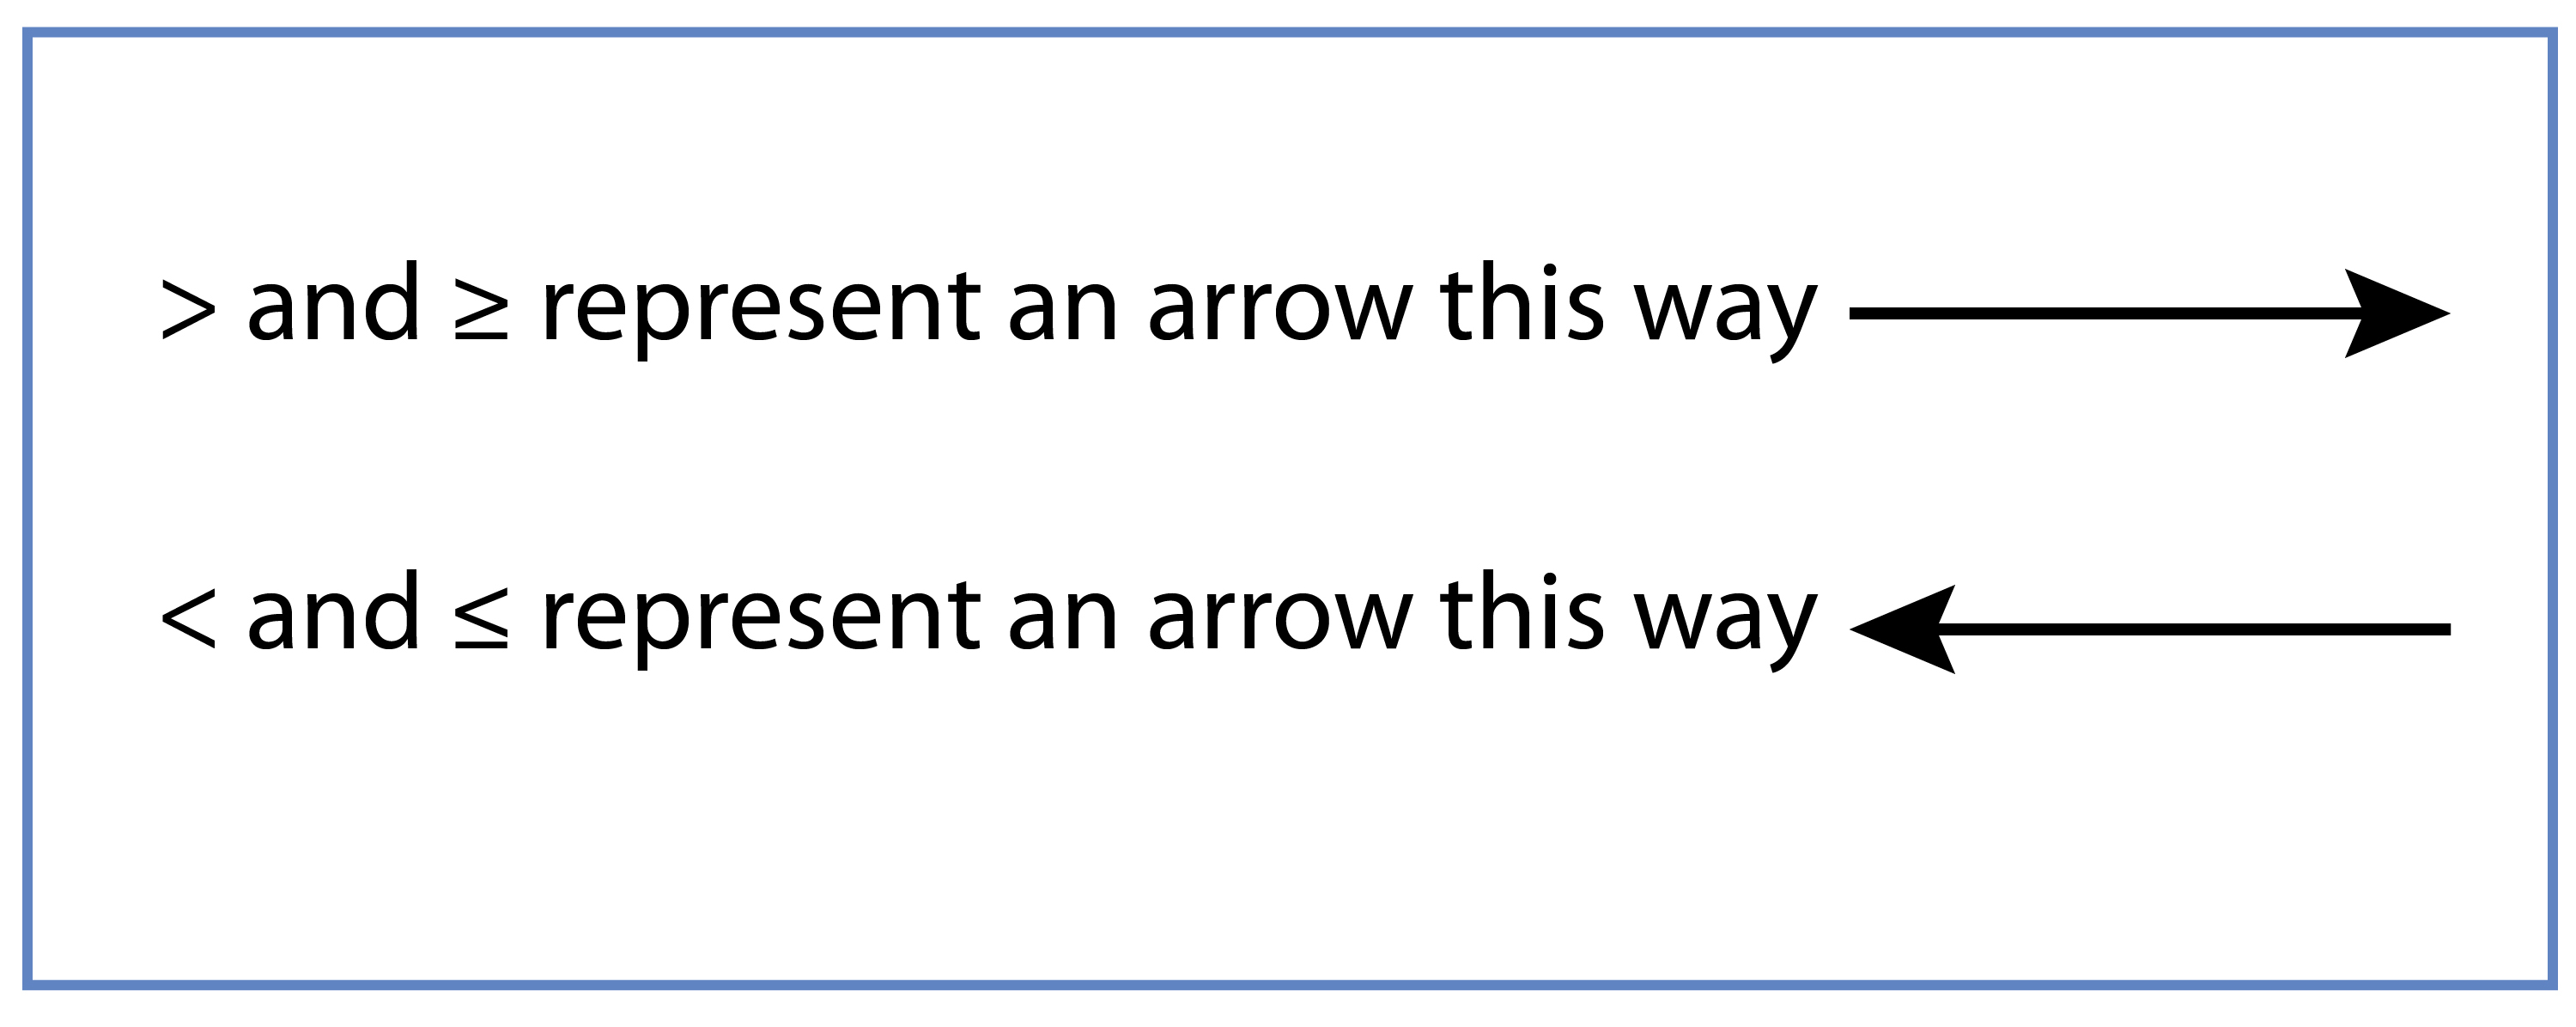 Greater than and less than can be represented as arrows a long the number line